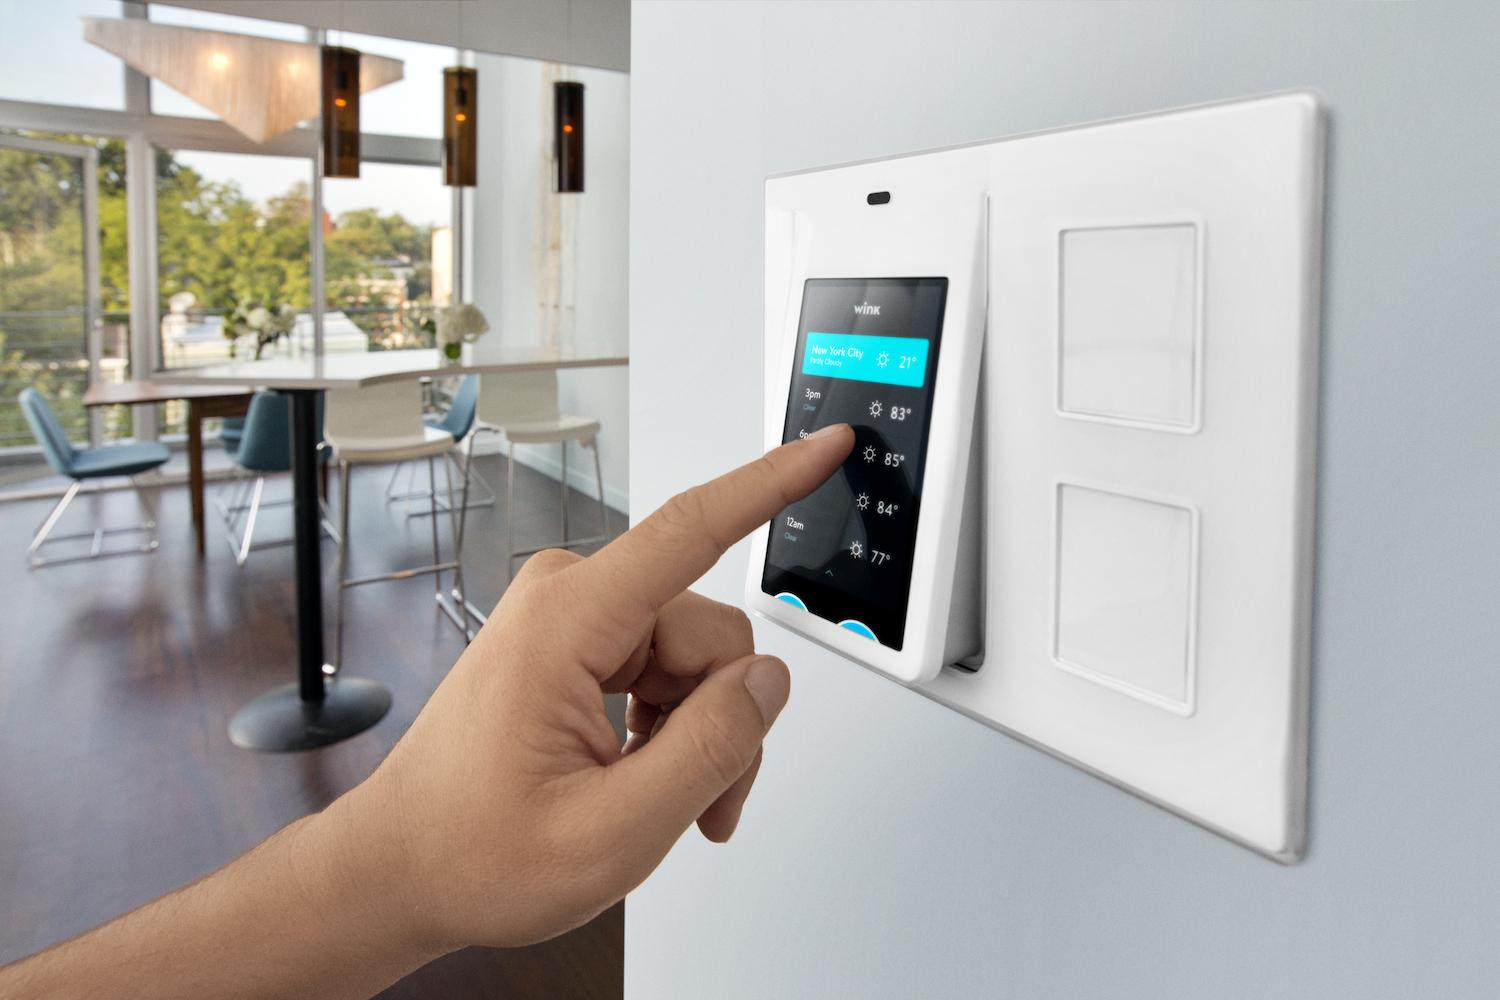 Wink Partners With Pro Com To Simplify The Smart Home